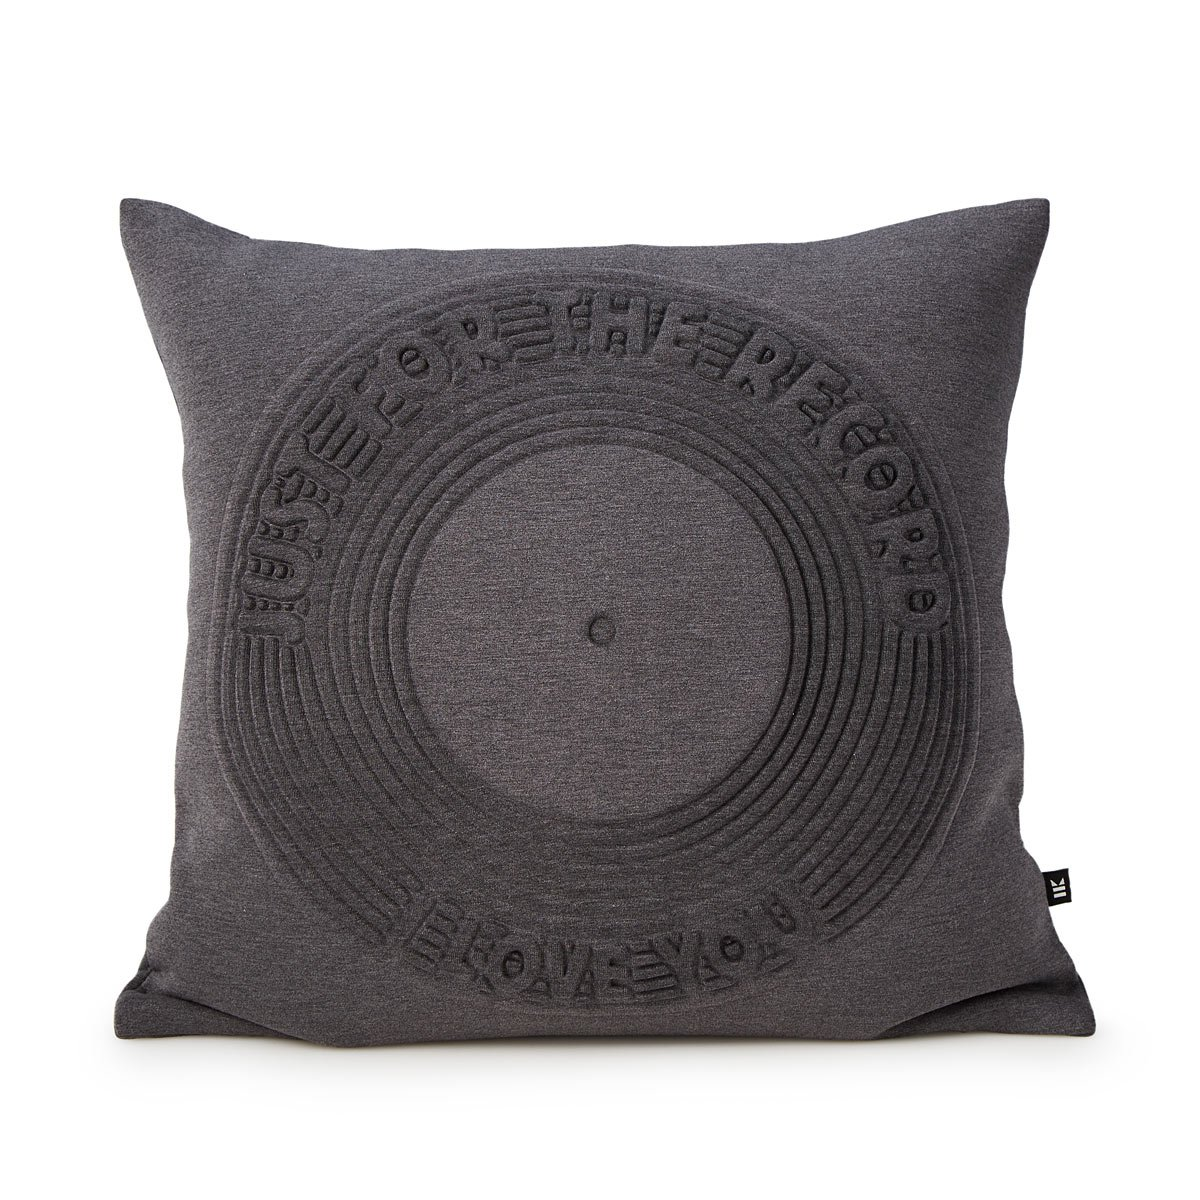 Just For The Record Pillow Decorative Love Record Pillow